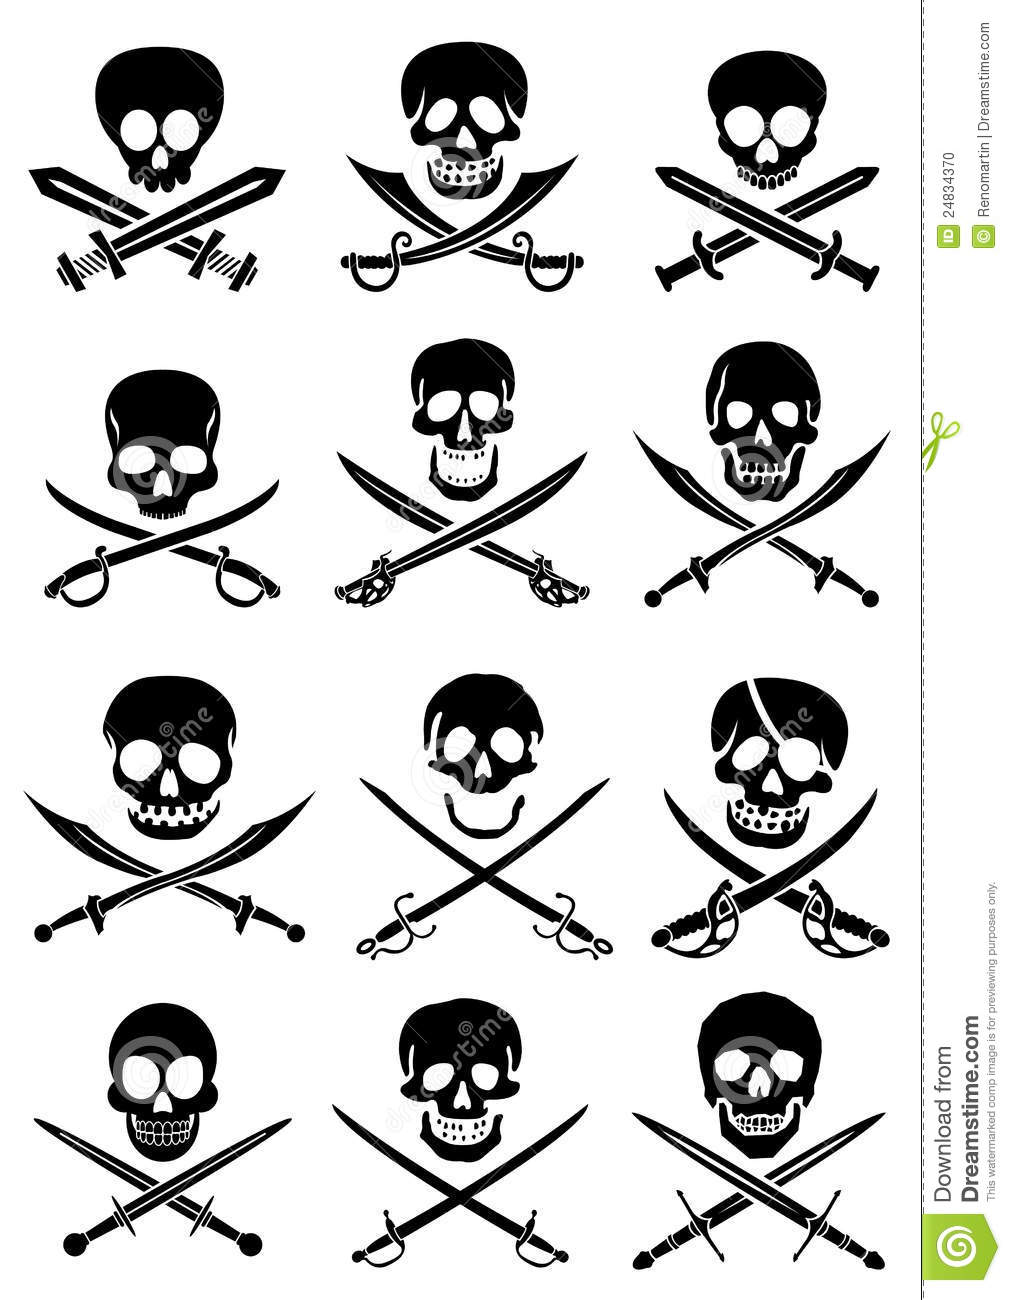 Crossed Swords With Skulls Vector Collection In Wh Stock Photo - Image ...